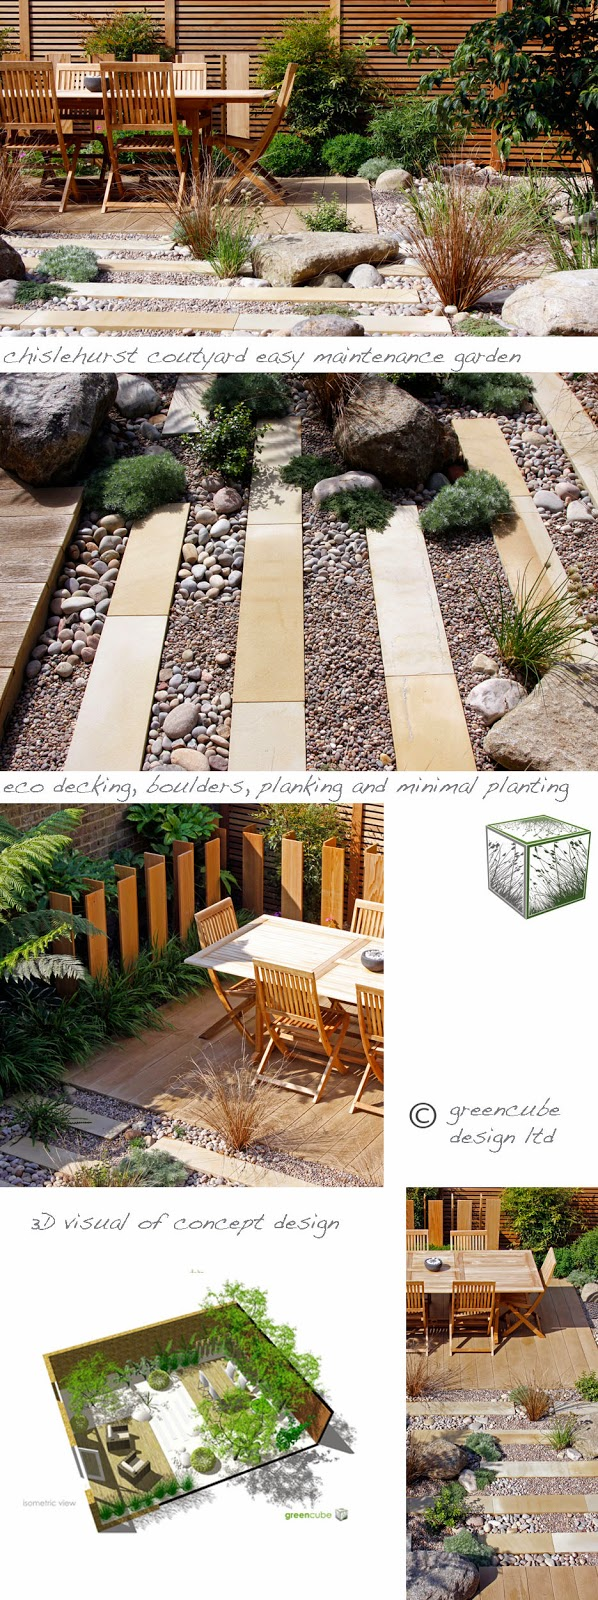 Greencube Garden And Landscape Design, UK: Great News For